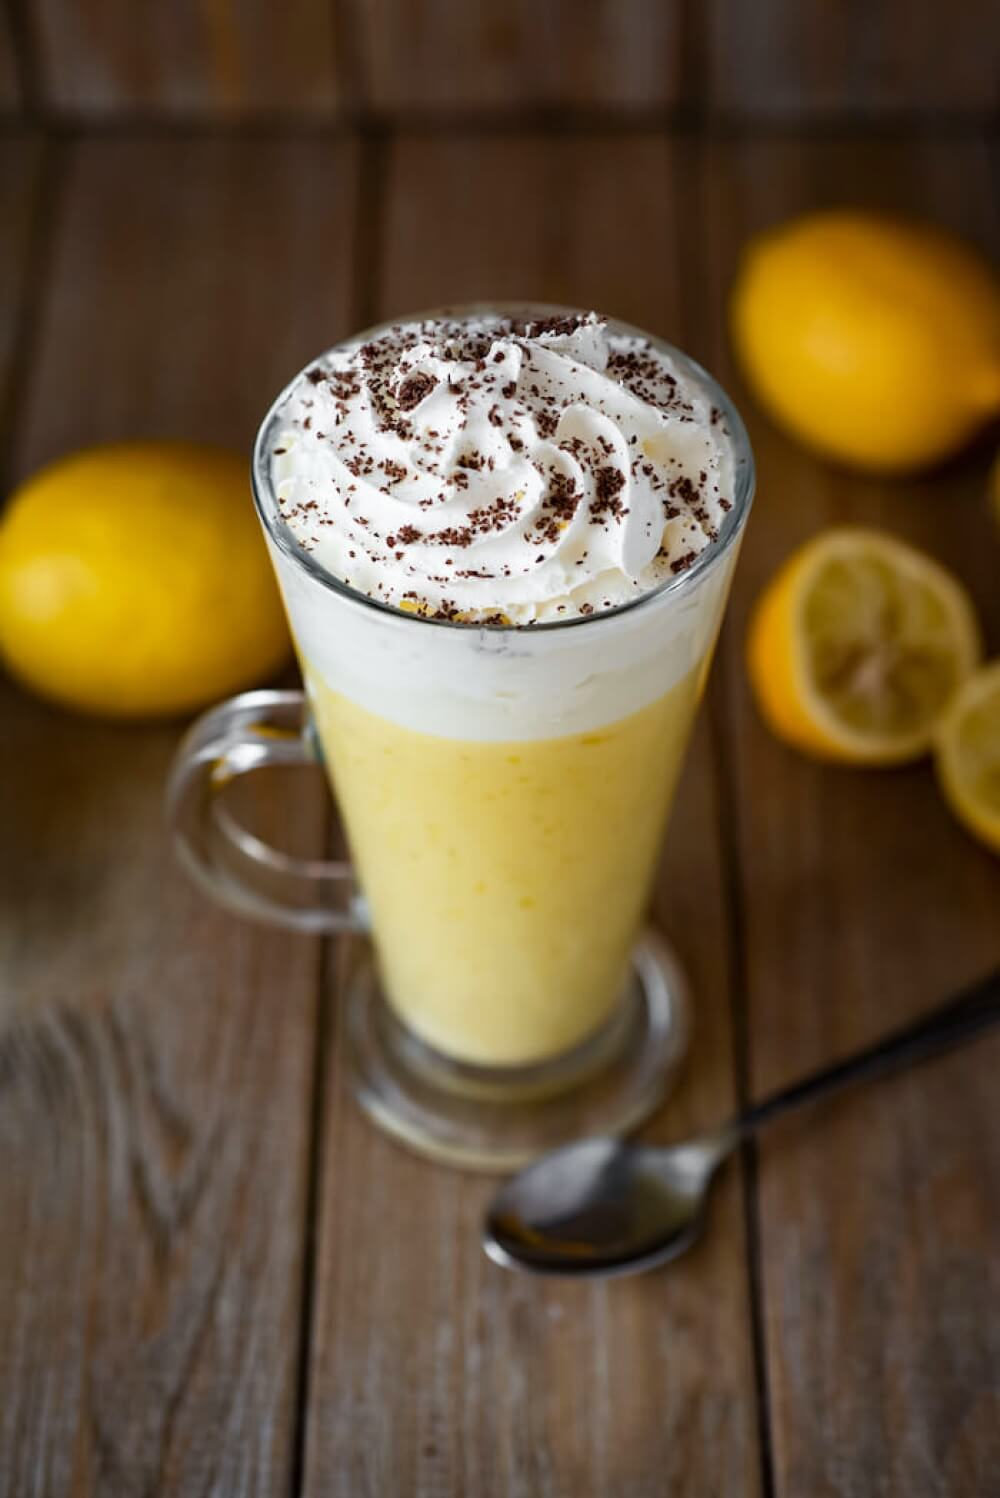 Lemon Mousse with Whipped Cream